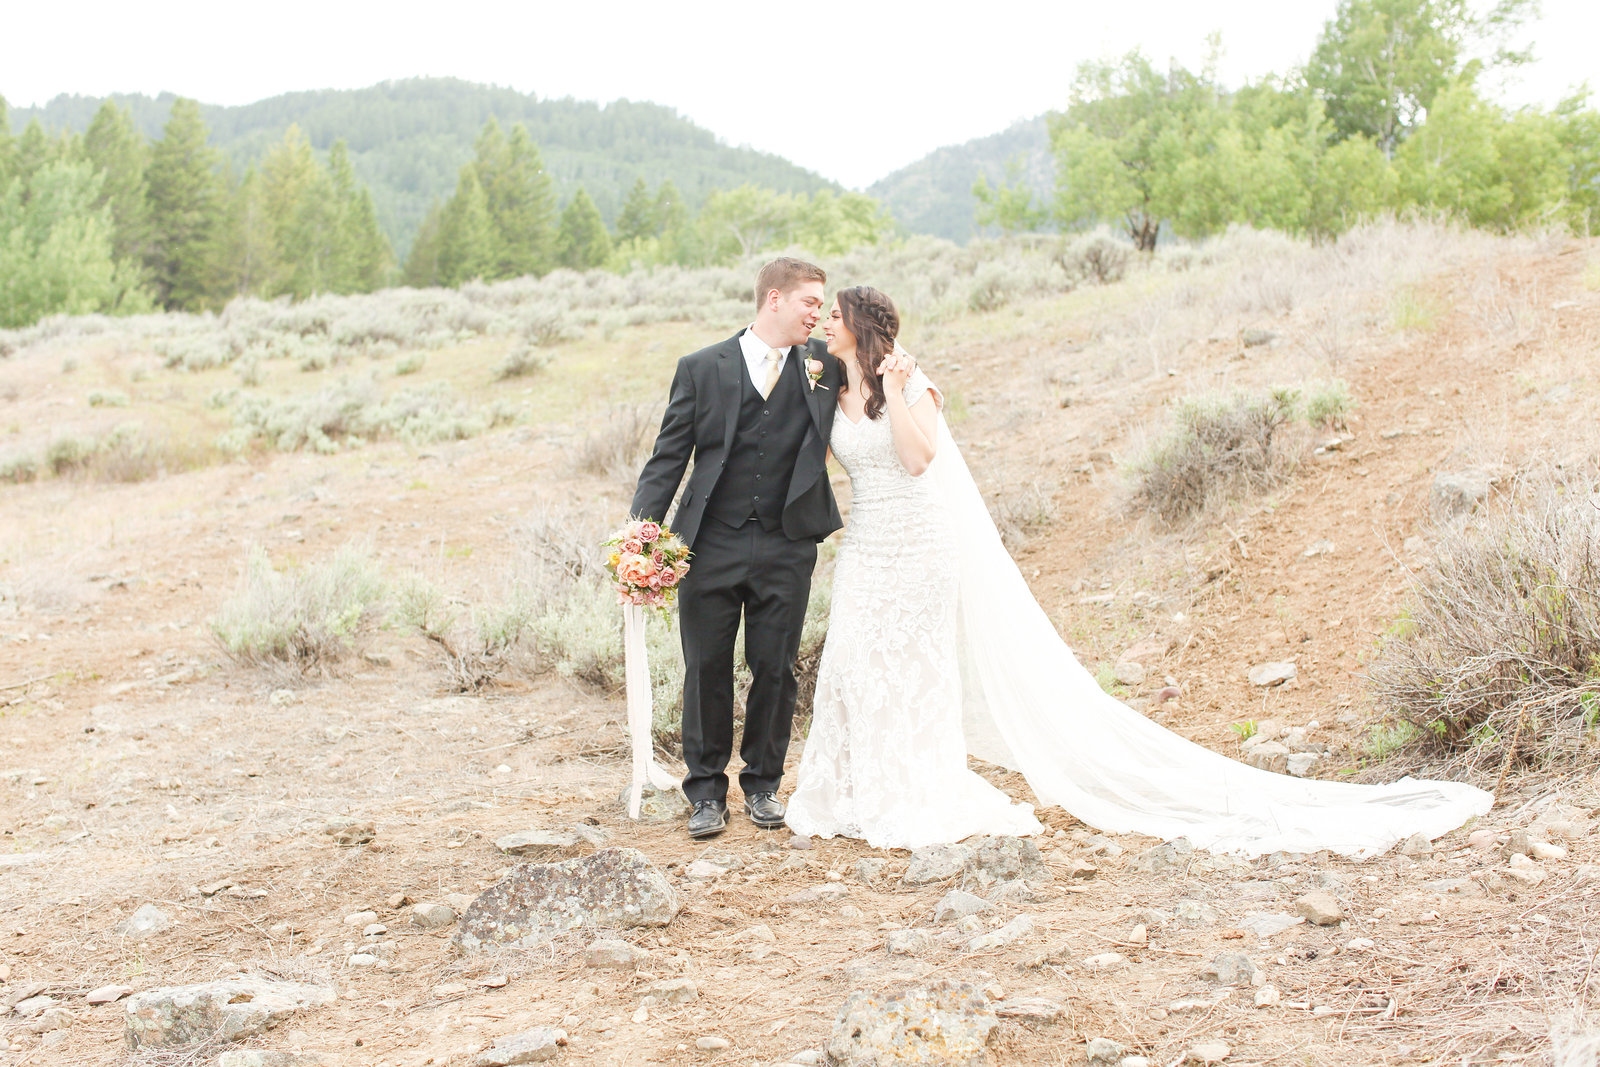 Kenadi&Kade (133 of 260)